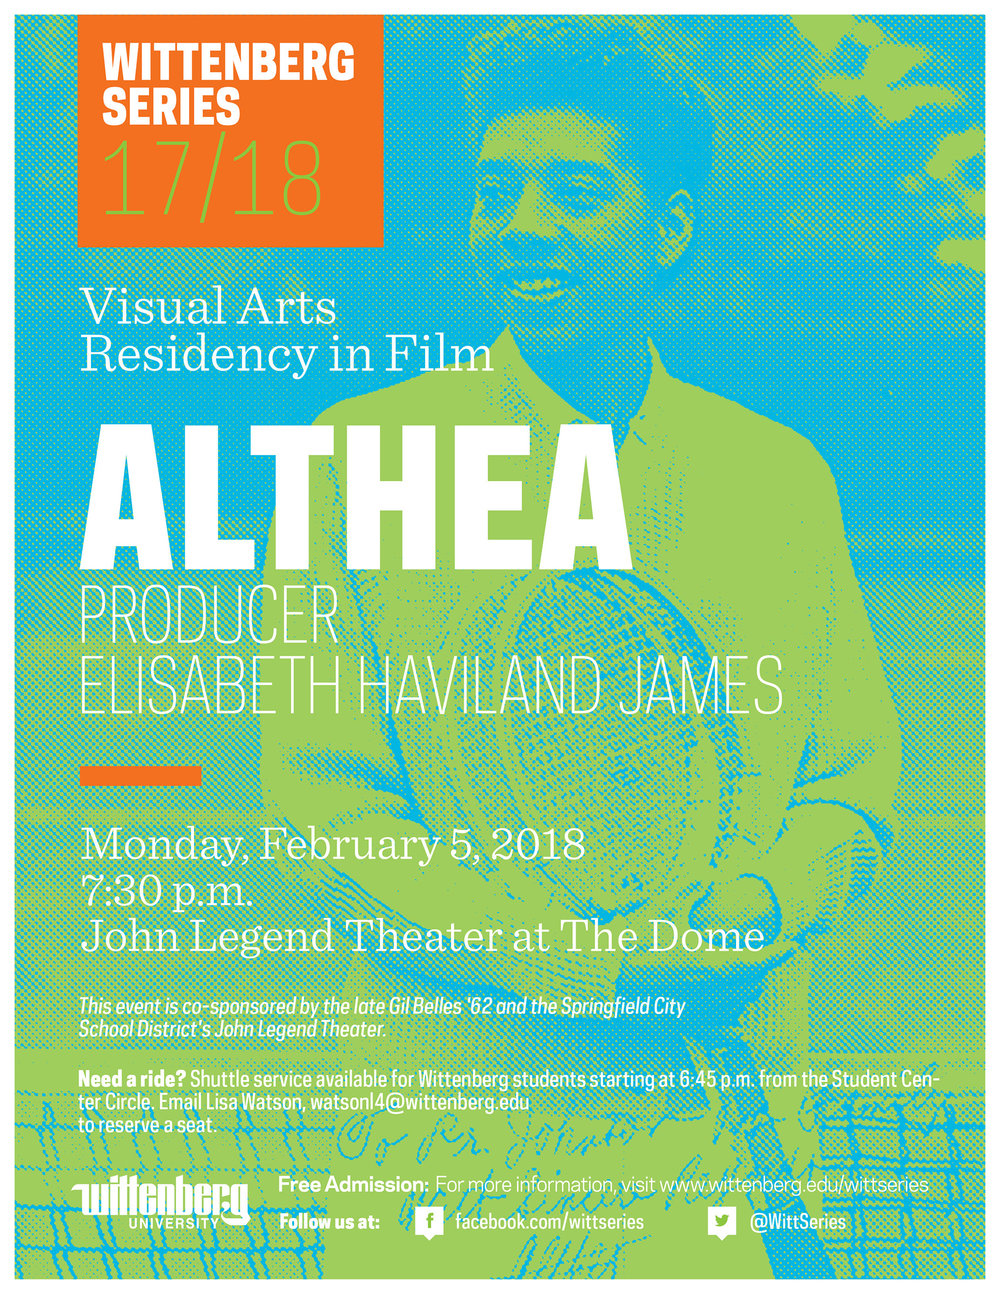 WITT SERIES ALTHEA FLYER.jpg